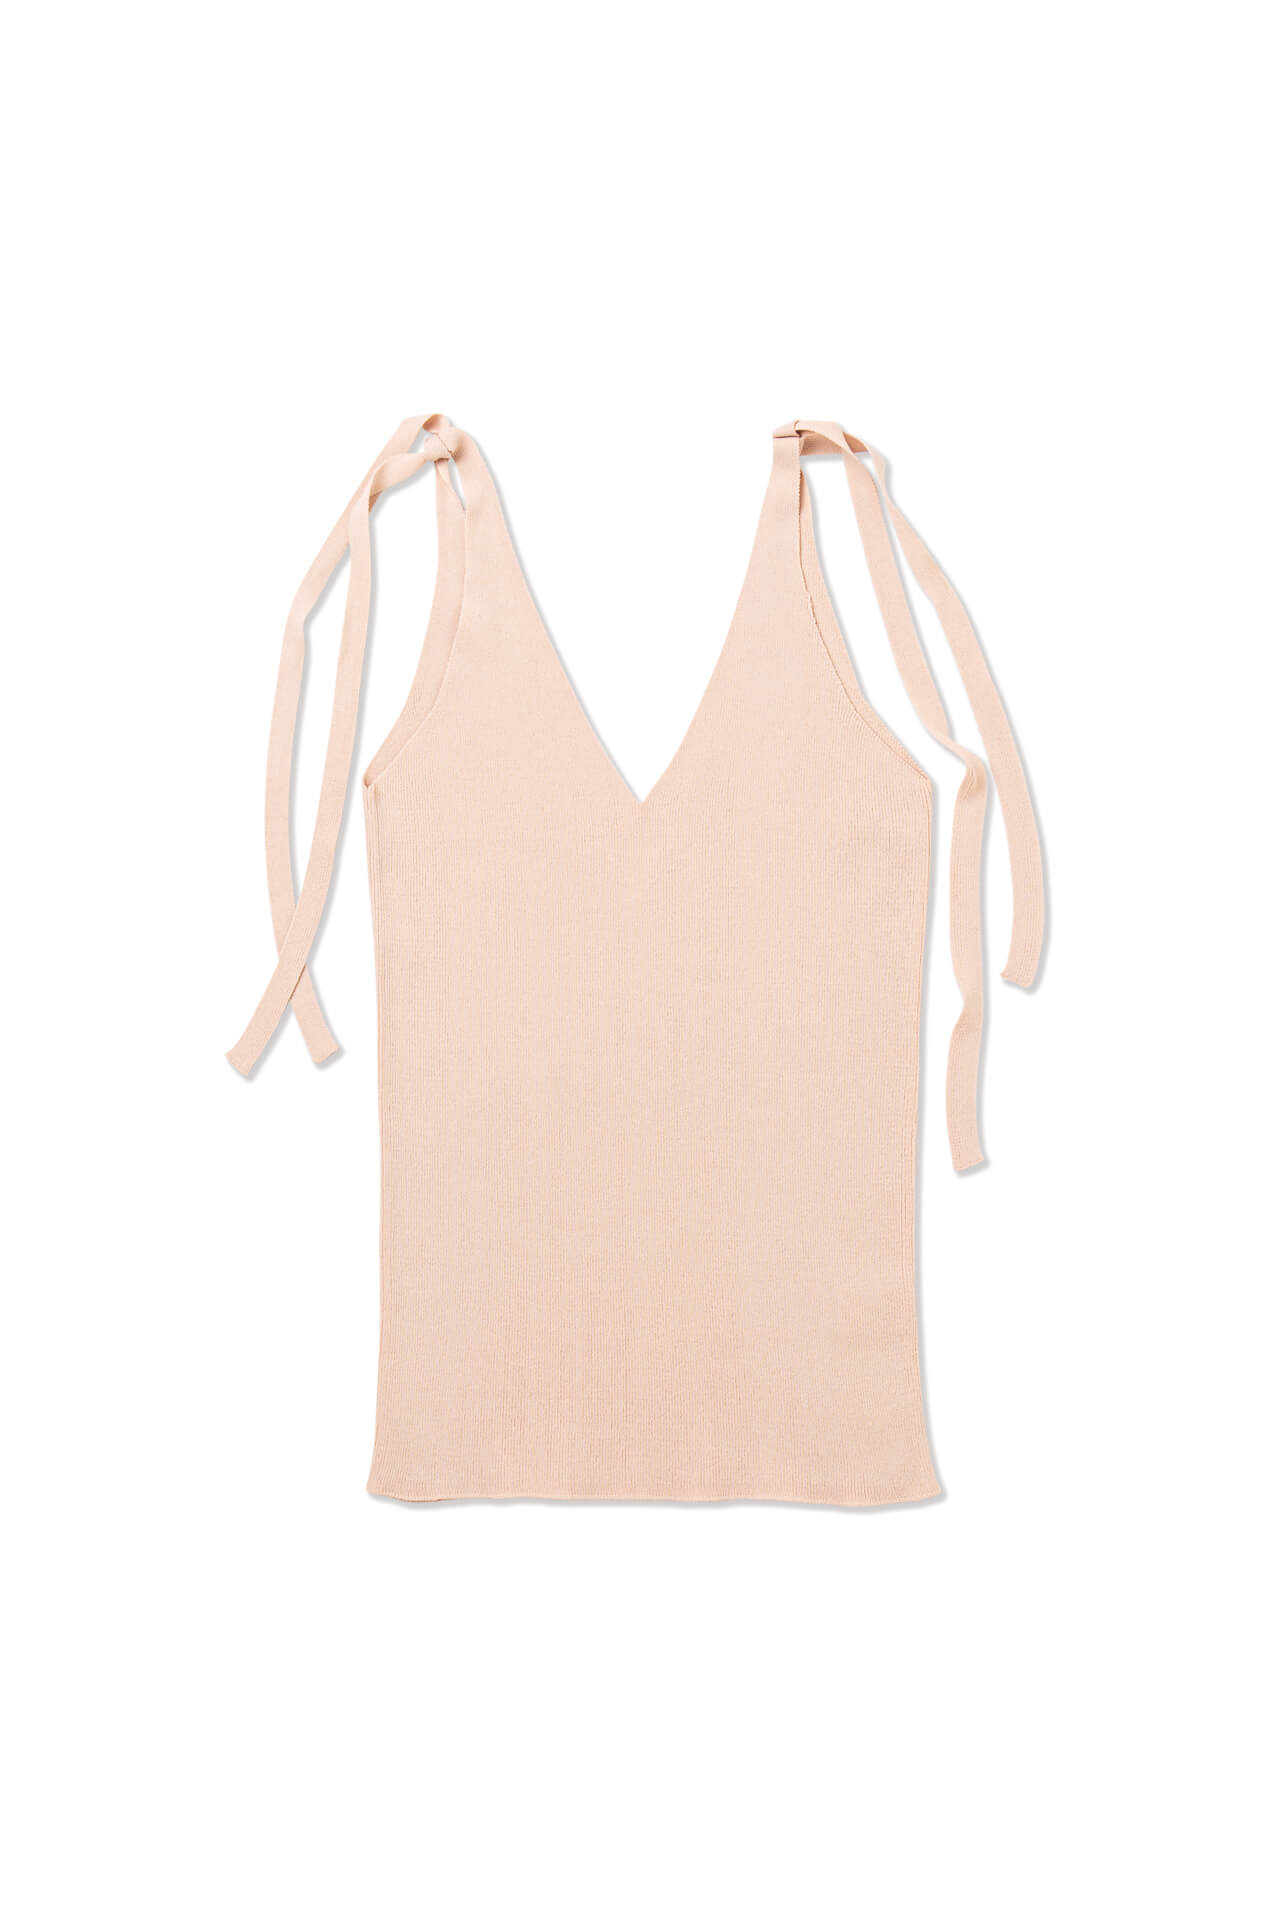 Knitted Strap Top